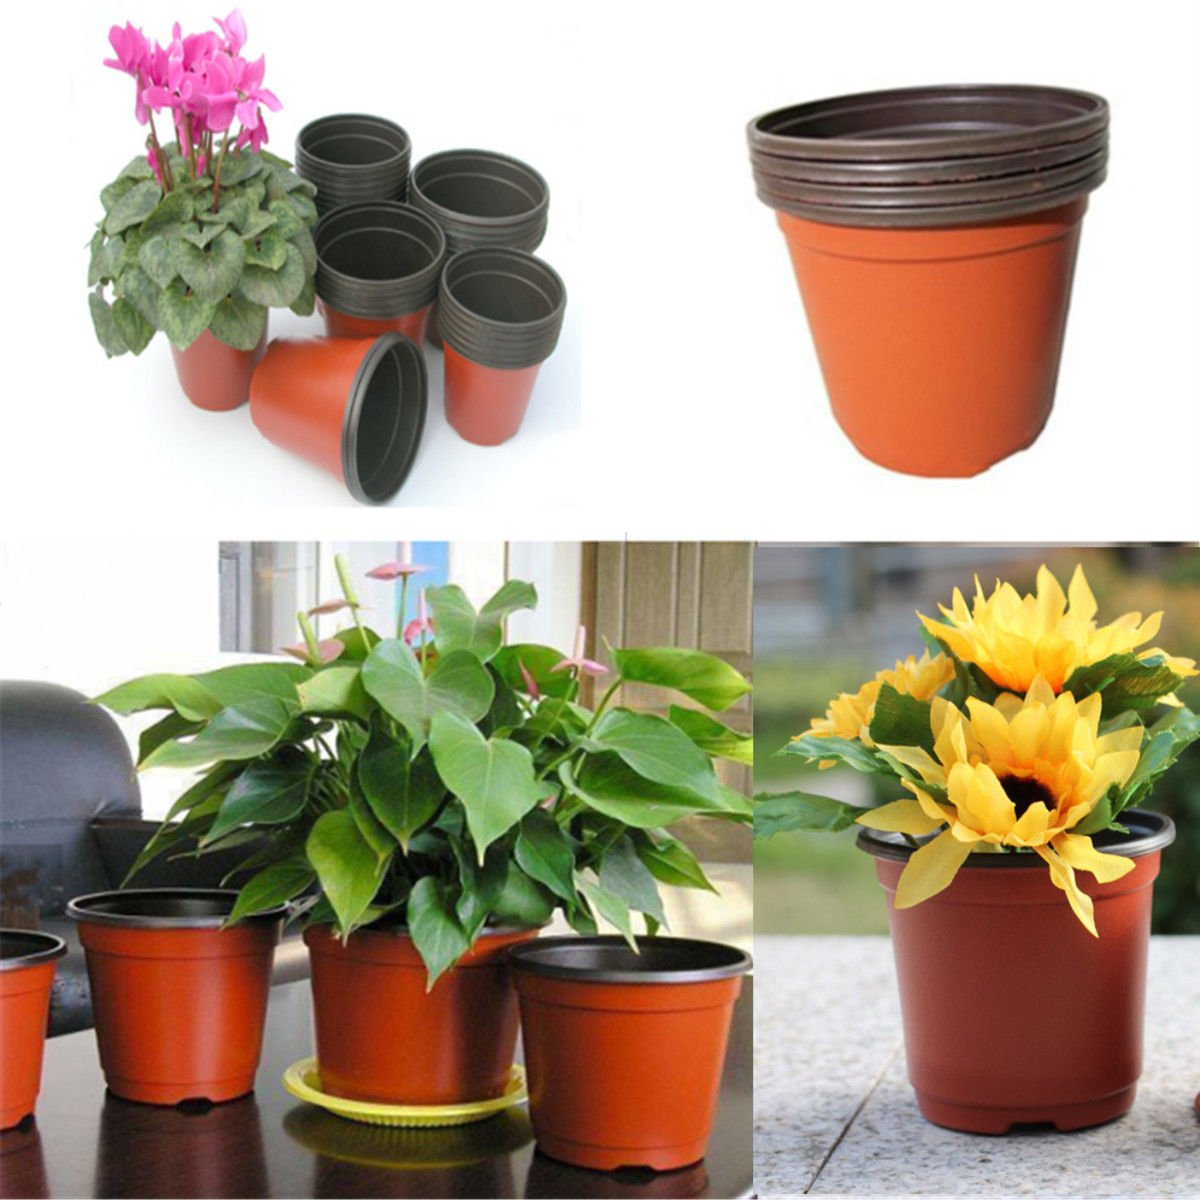 LOT of 100 Plastic Flower Nursery Pots Round Home Garden Pots Planter Planting Decor Clay Color 3.75 Inches X 2.80 Inches High